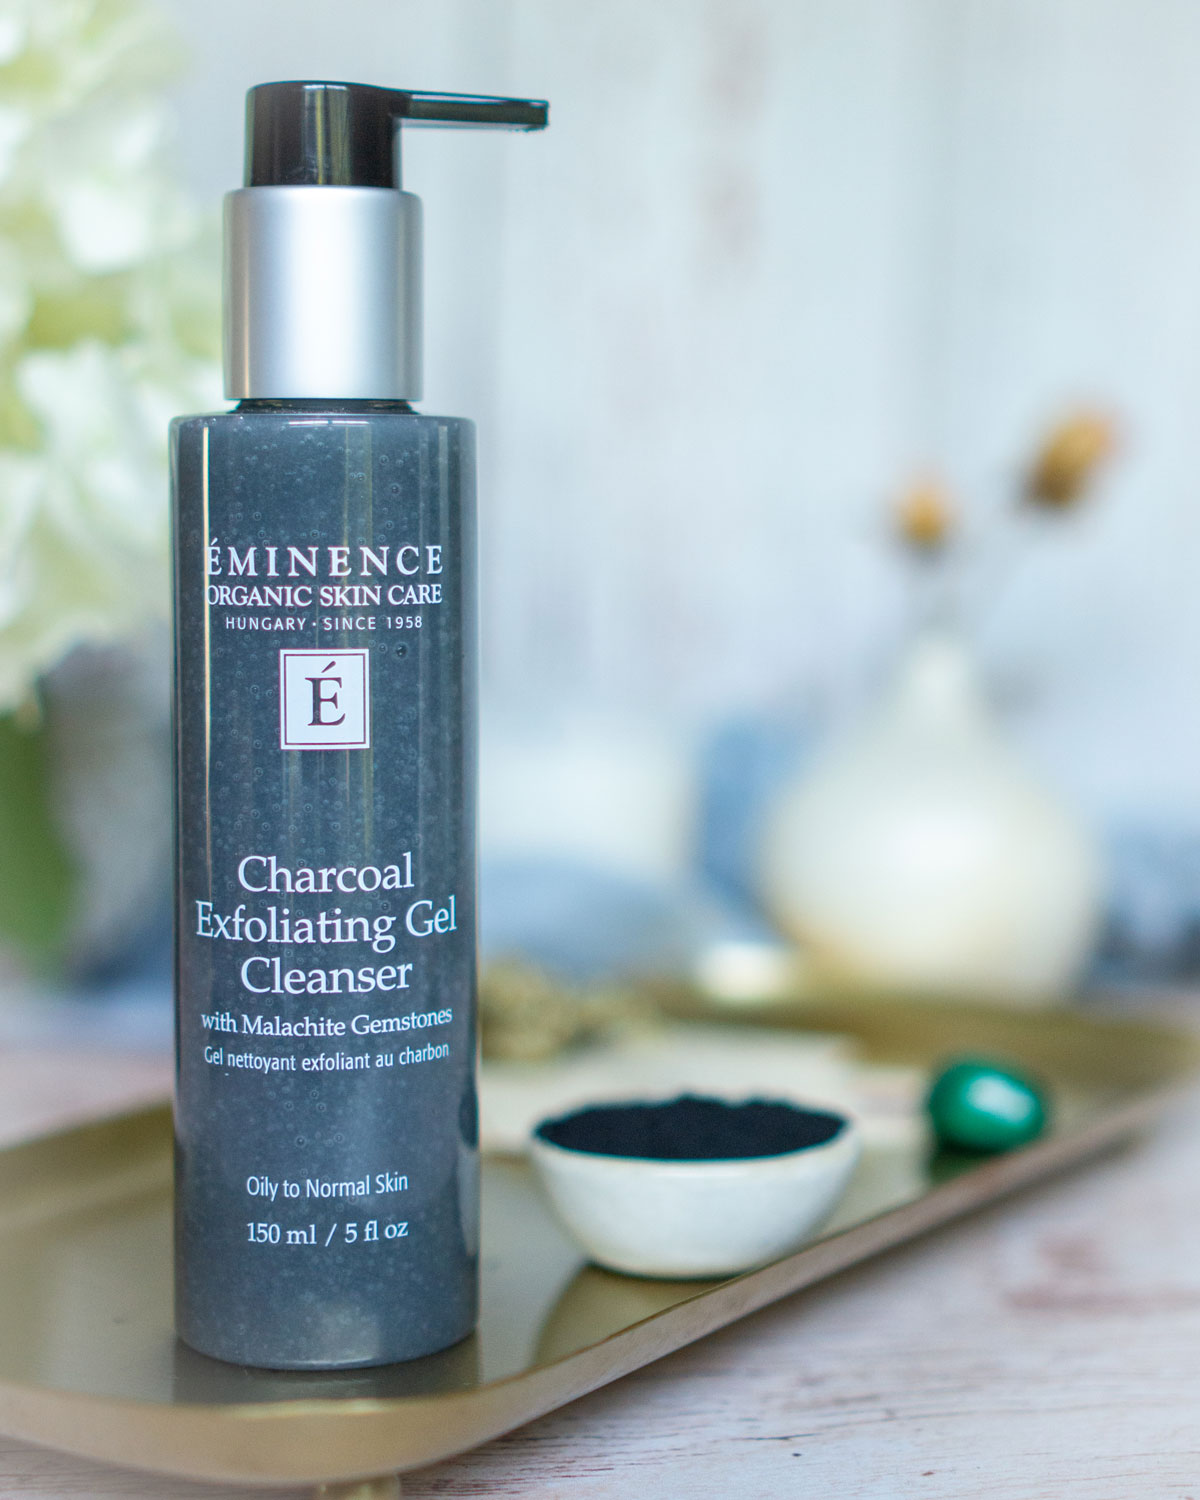 Charcoal Exfoliating Gel is a great choice when learning how to treat maskne